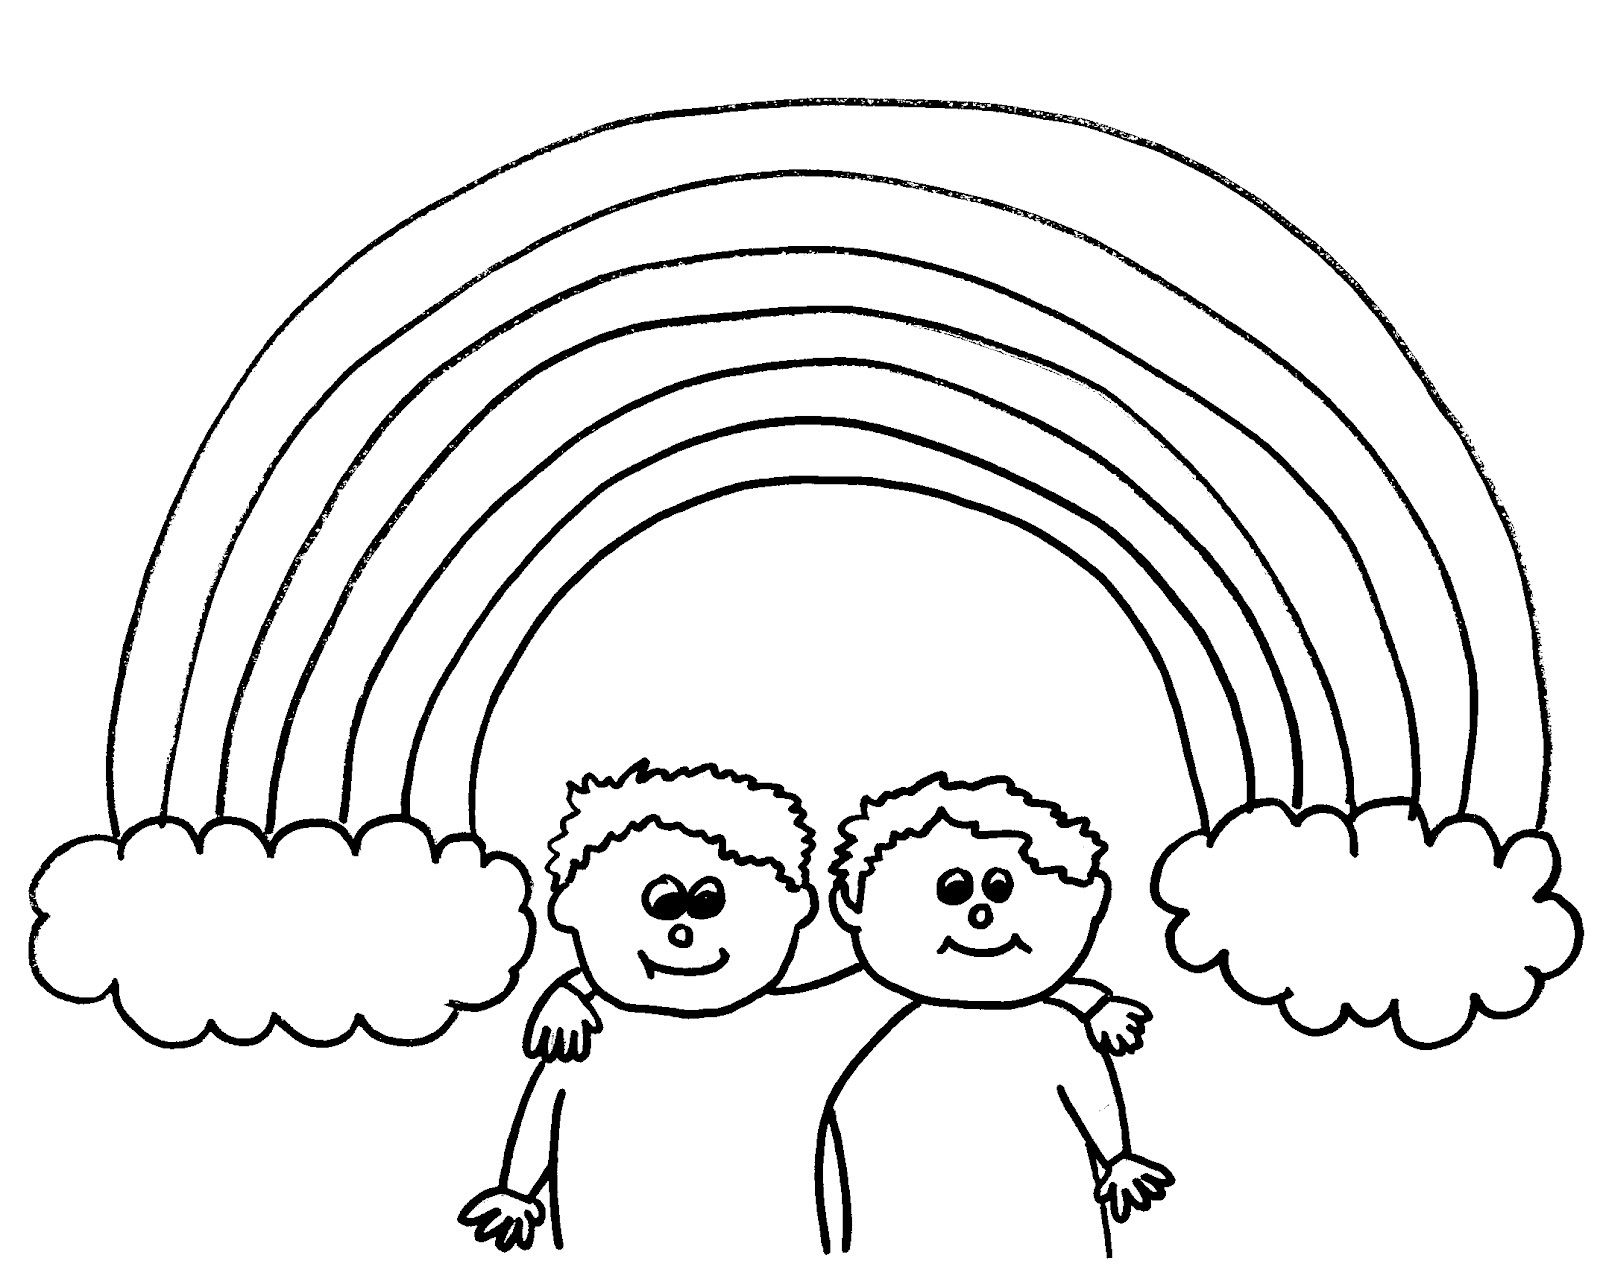 rainbow coloring pages rainbow 01 coloring page coloring page central rainbow coloring pages